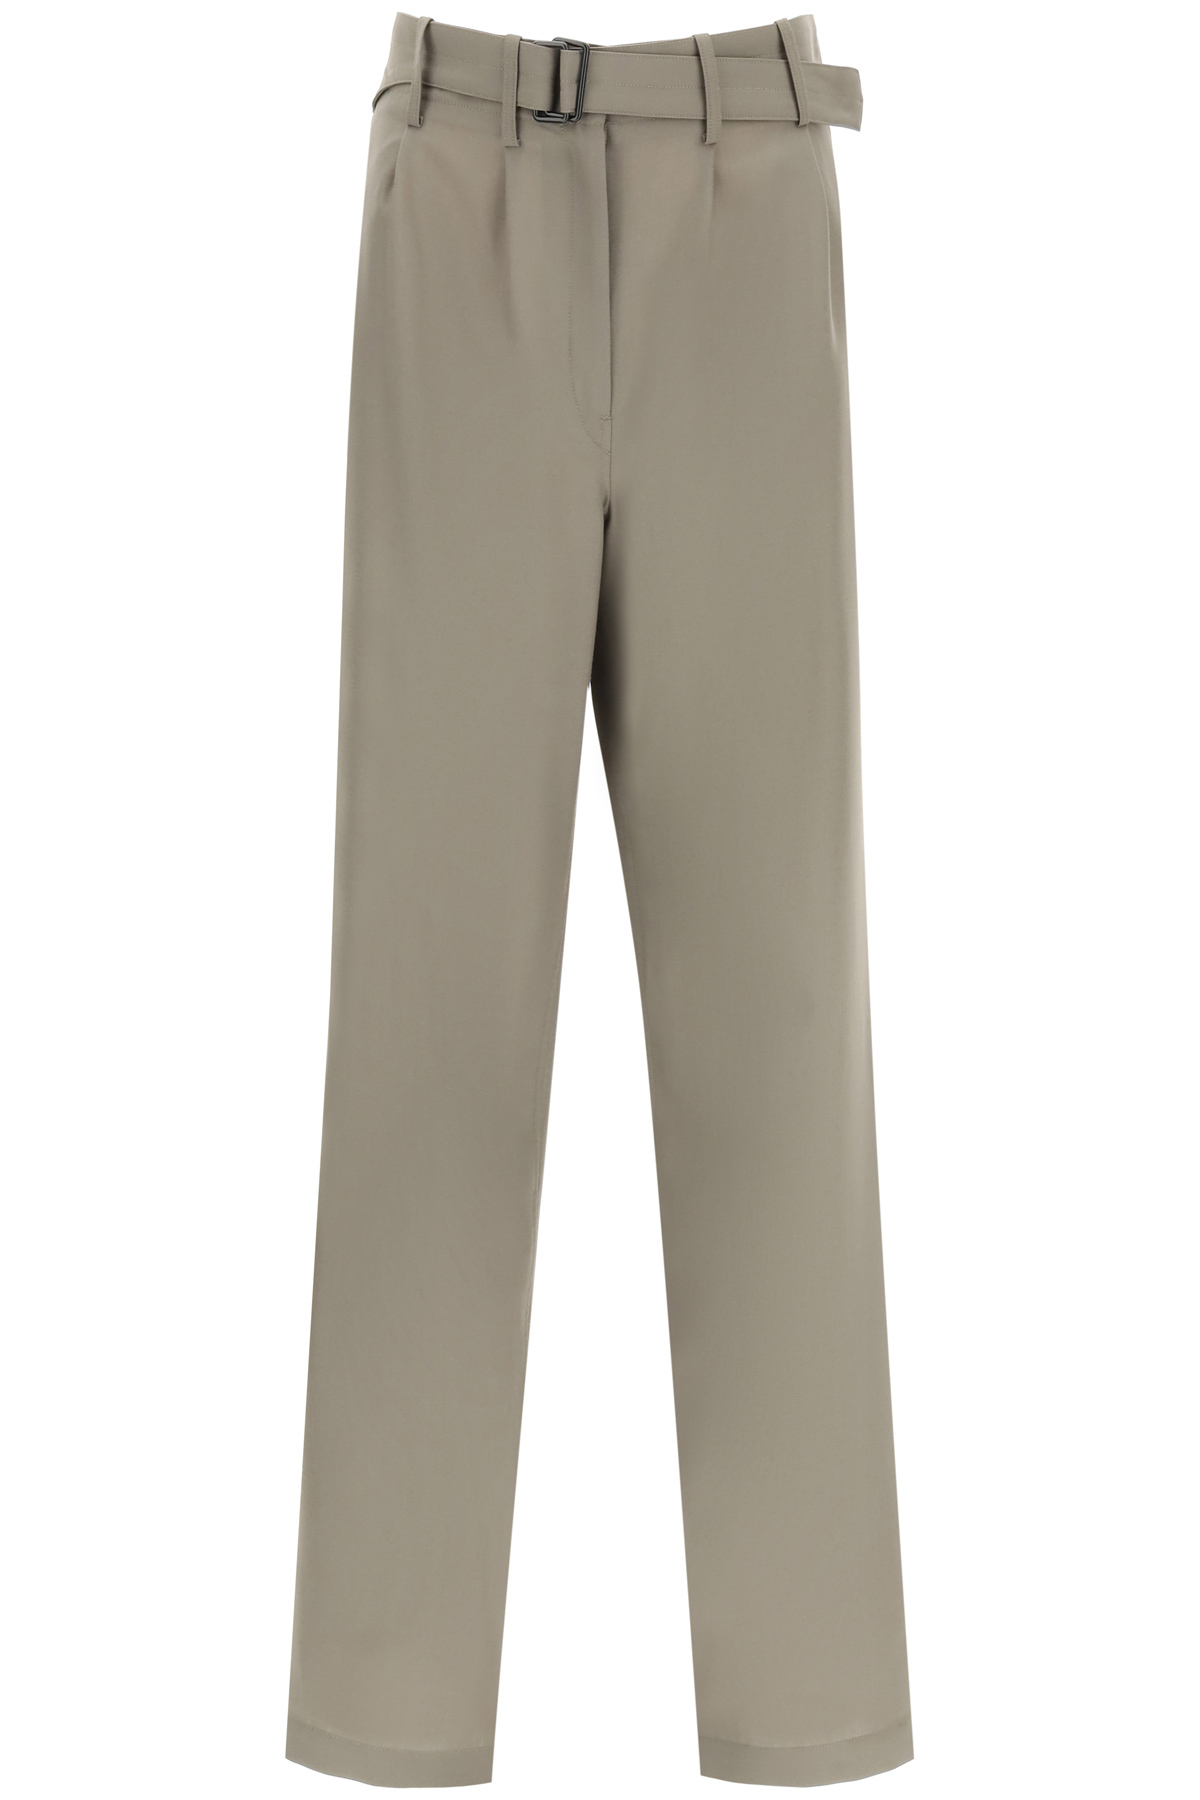 Lemaire WIDE LEG TROUSERS WITH BELT